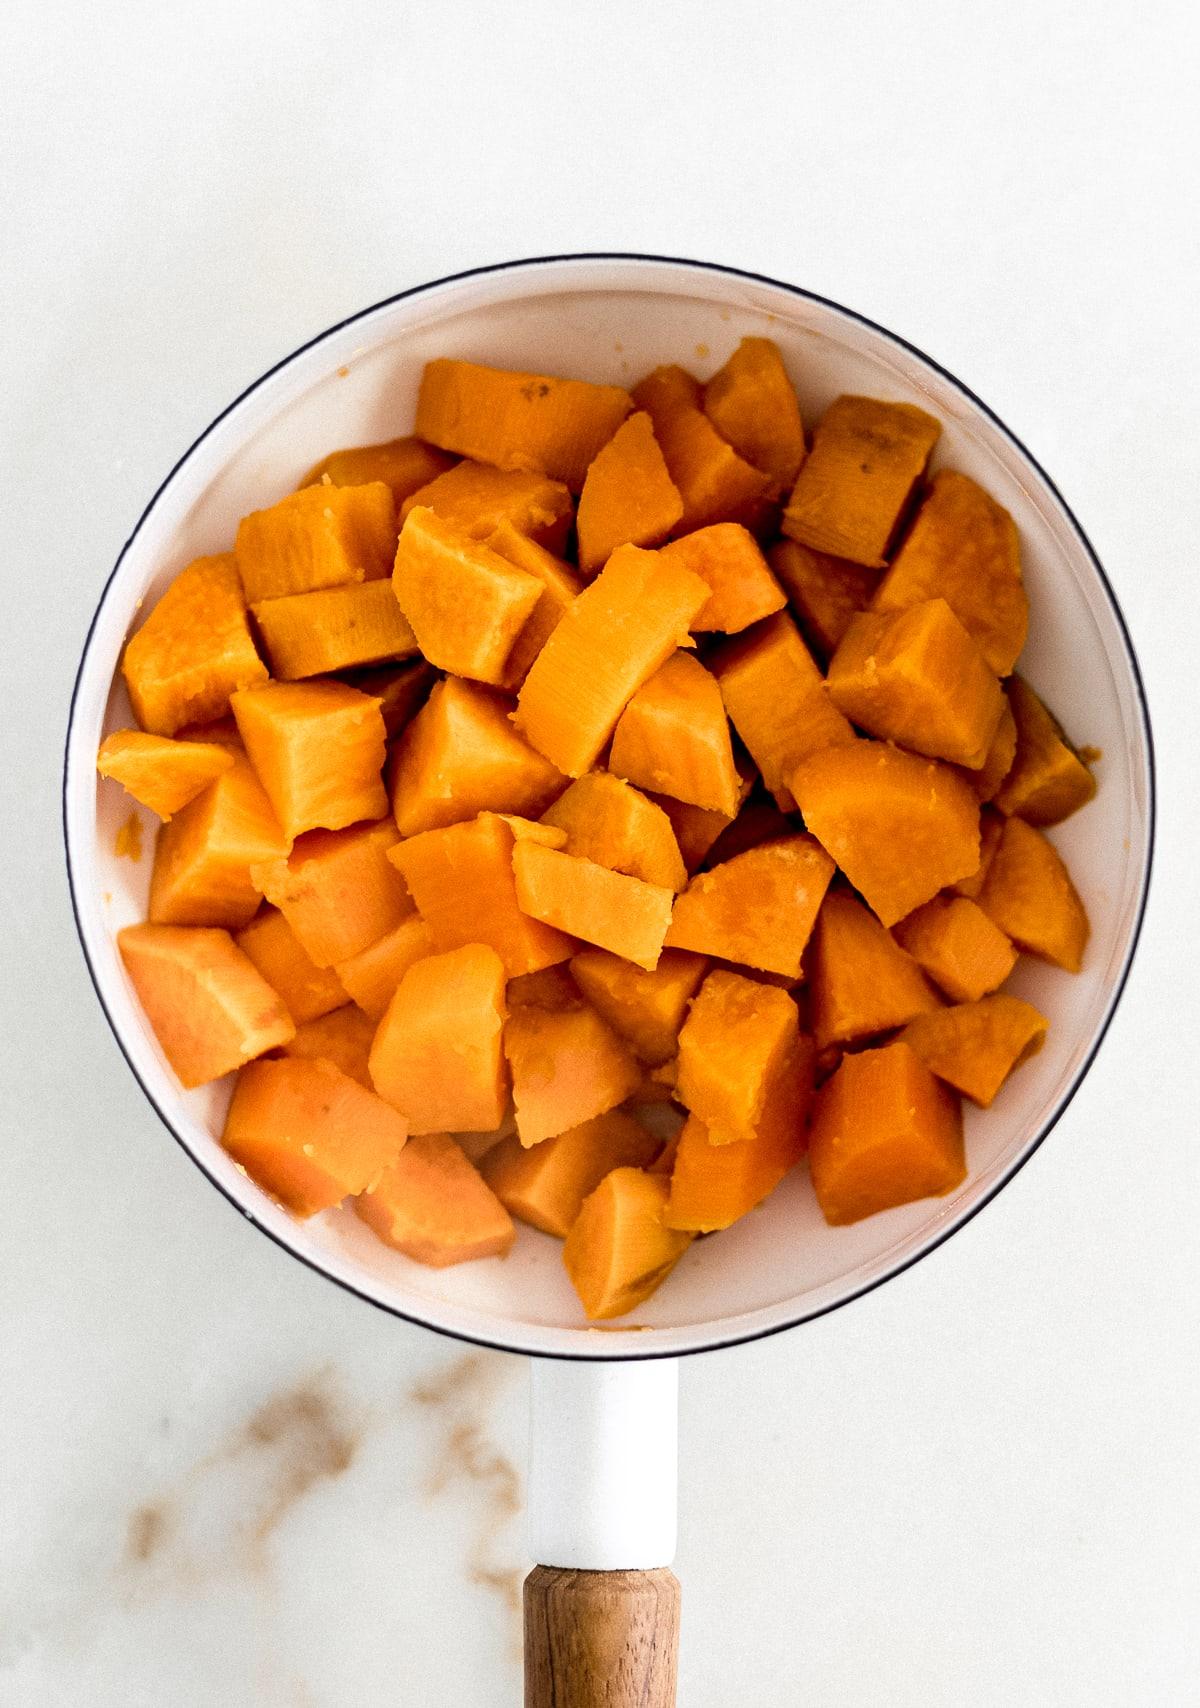 boiled, drained sweet potato cubes in a white saucepan.